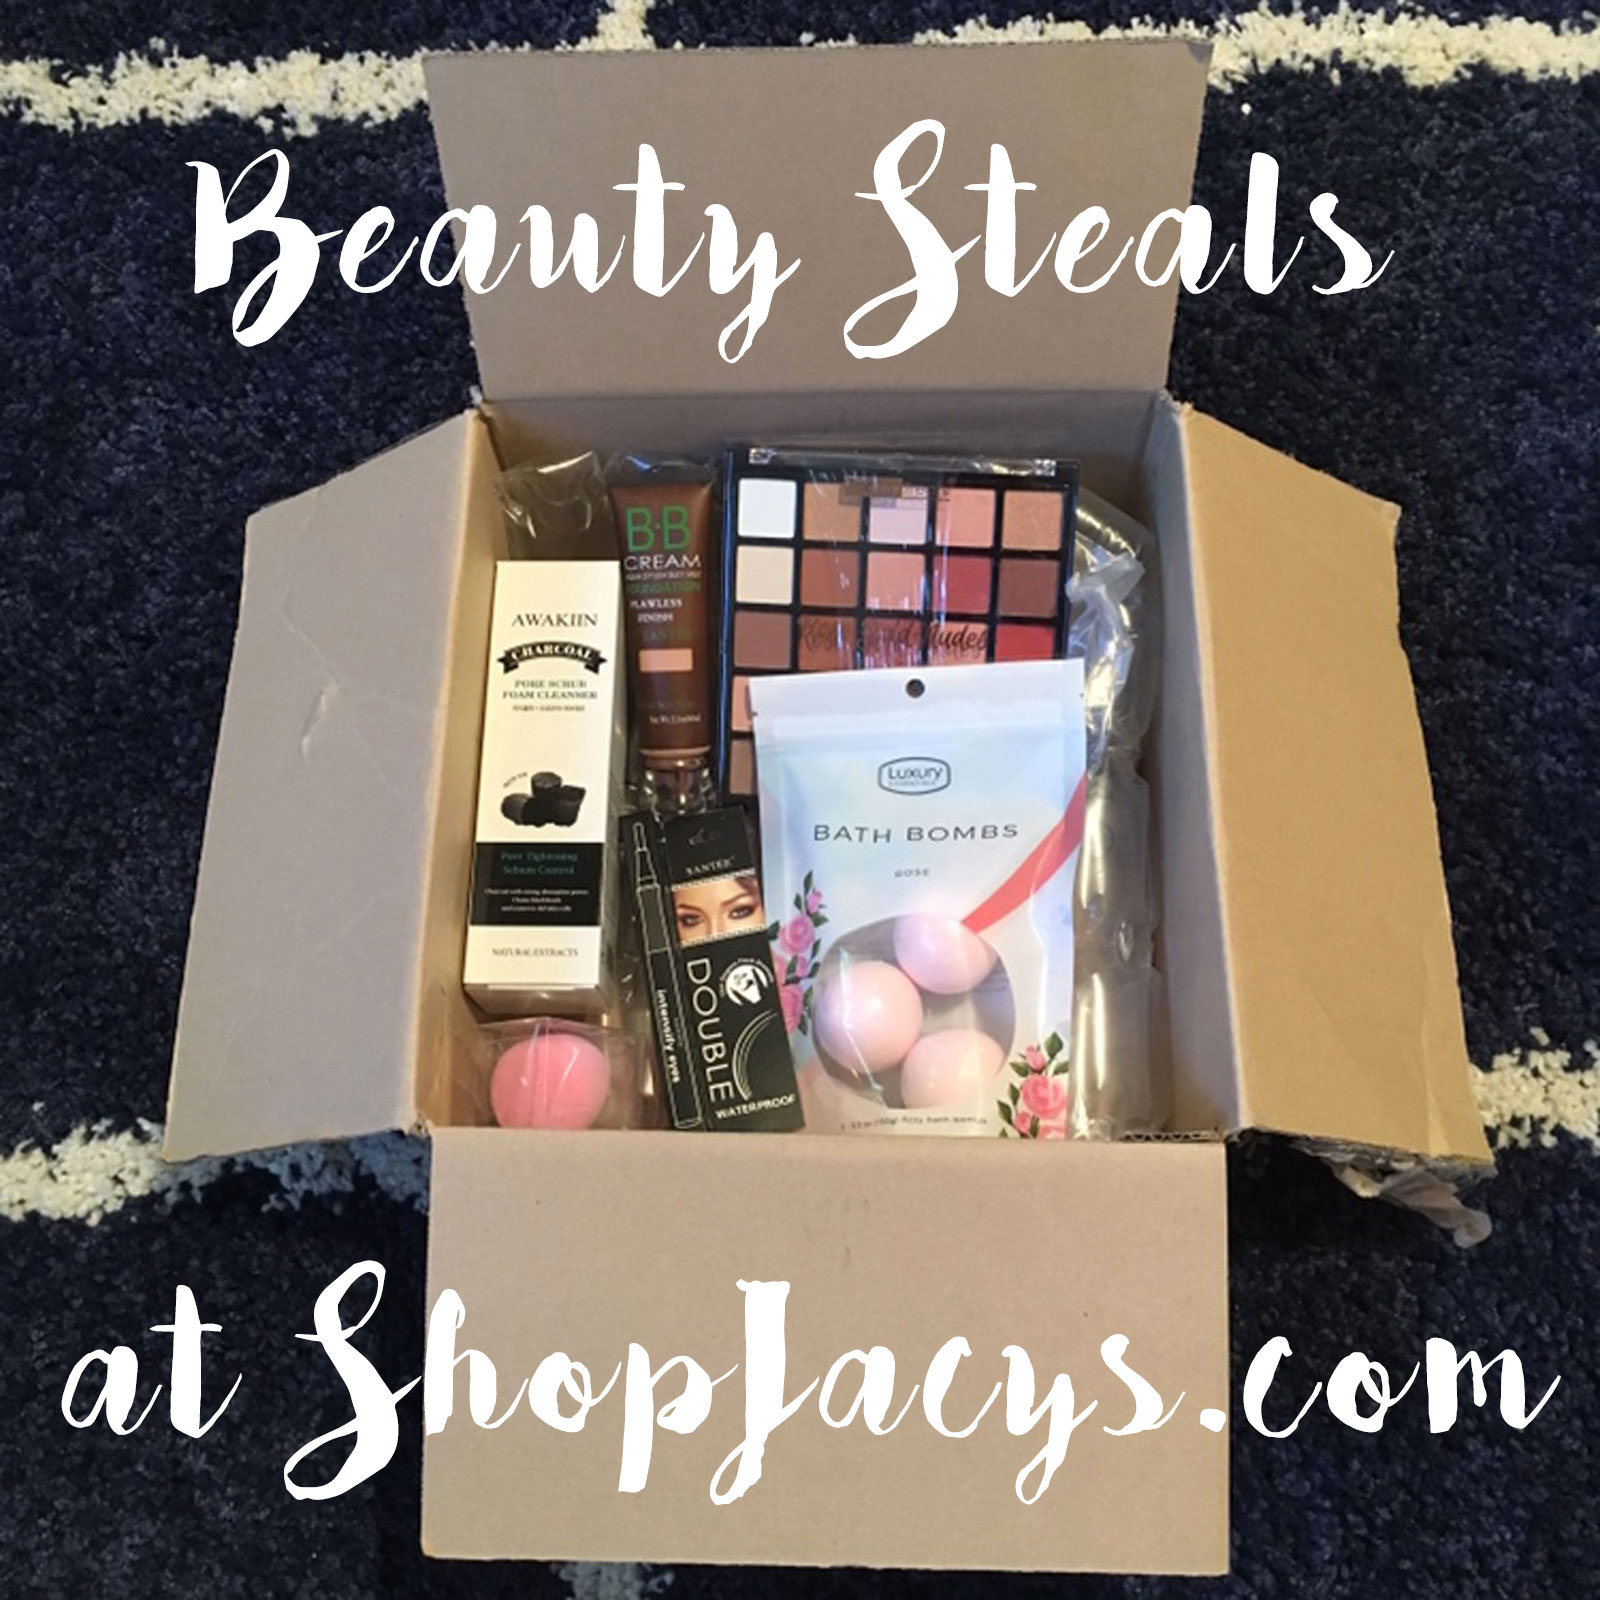 Shop Jacys Review: Beauty bargains mostly from $2 - $7, nothing over $20!